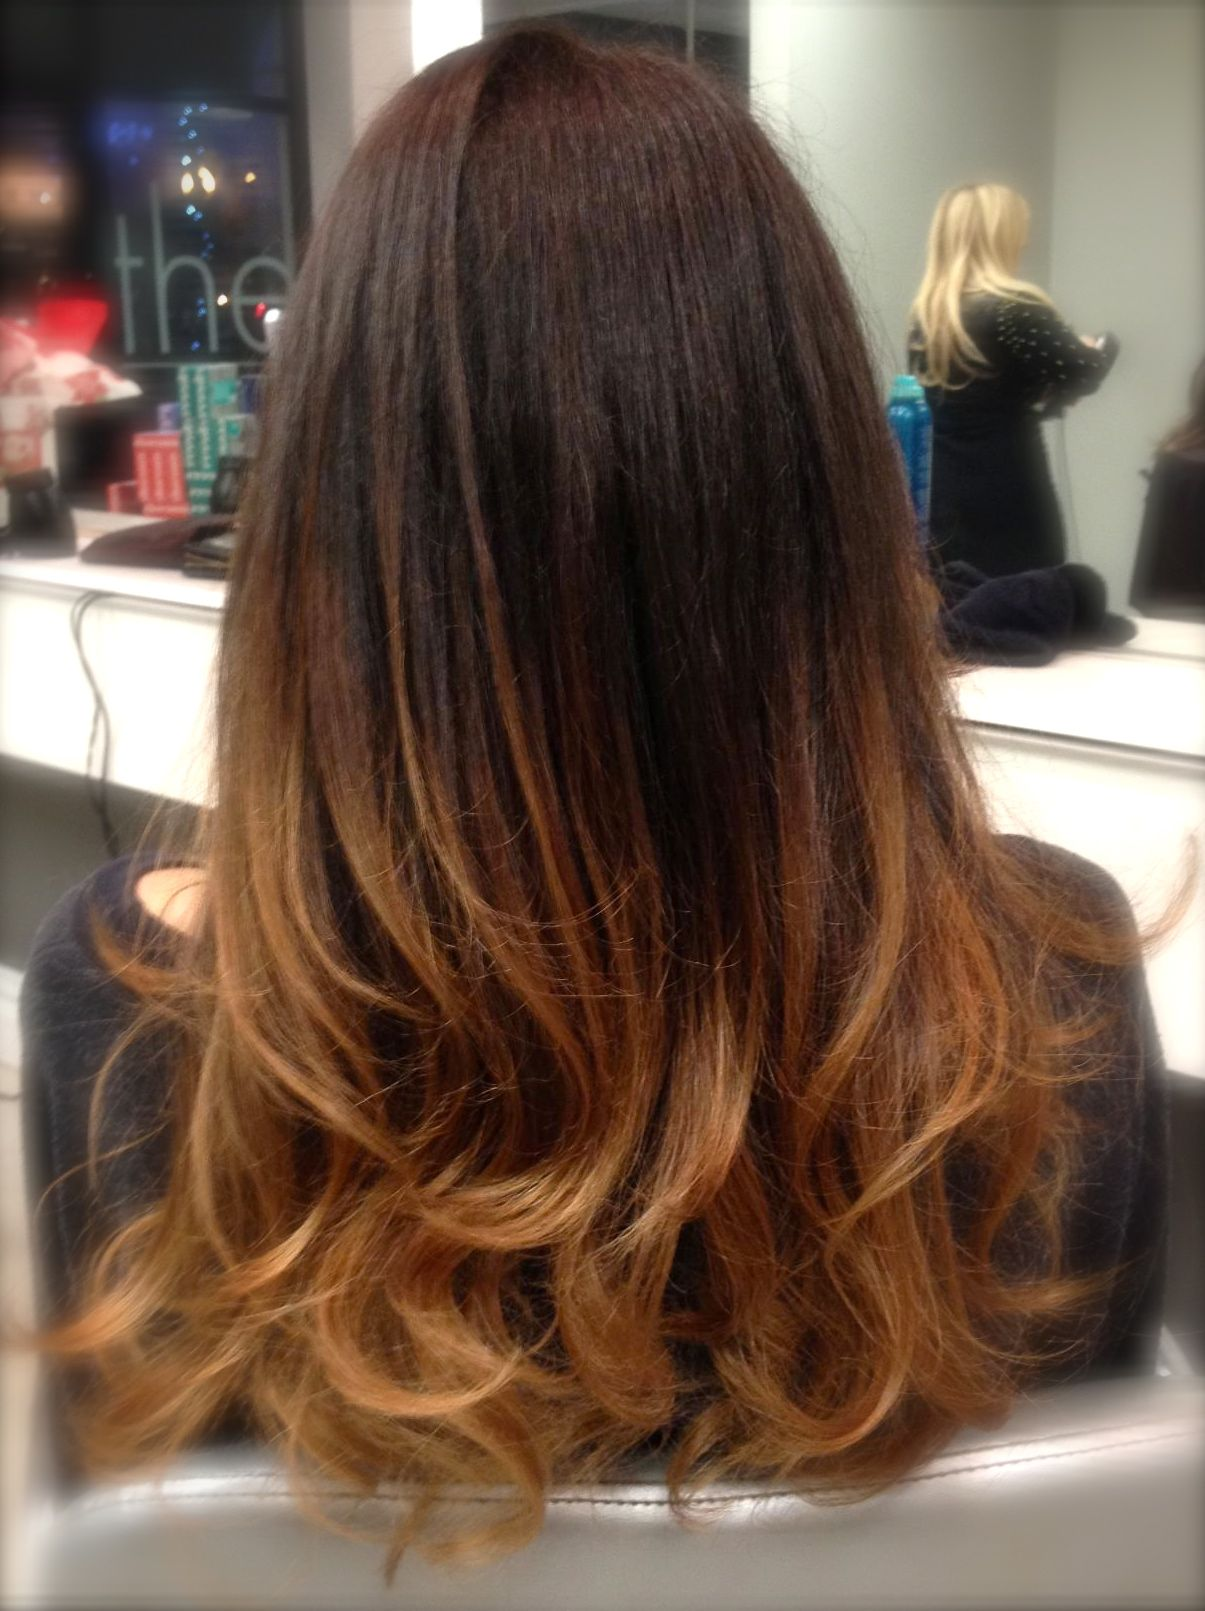 Hair Color By Danielle At The Studio New York Hair Color